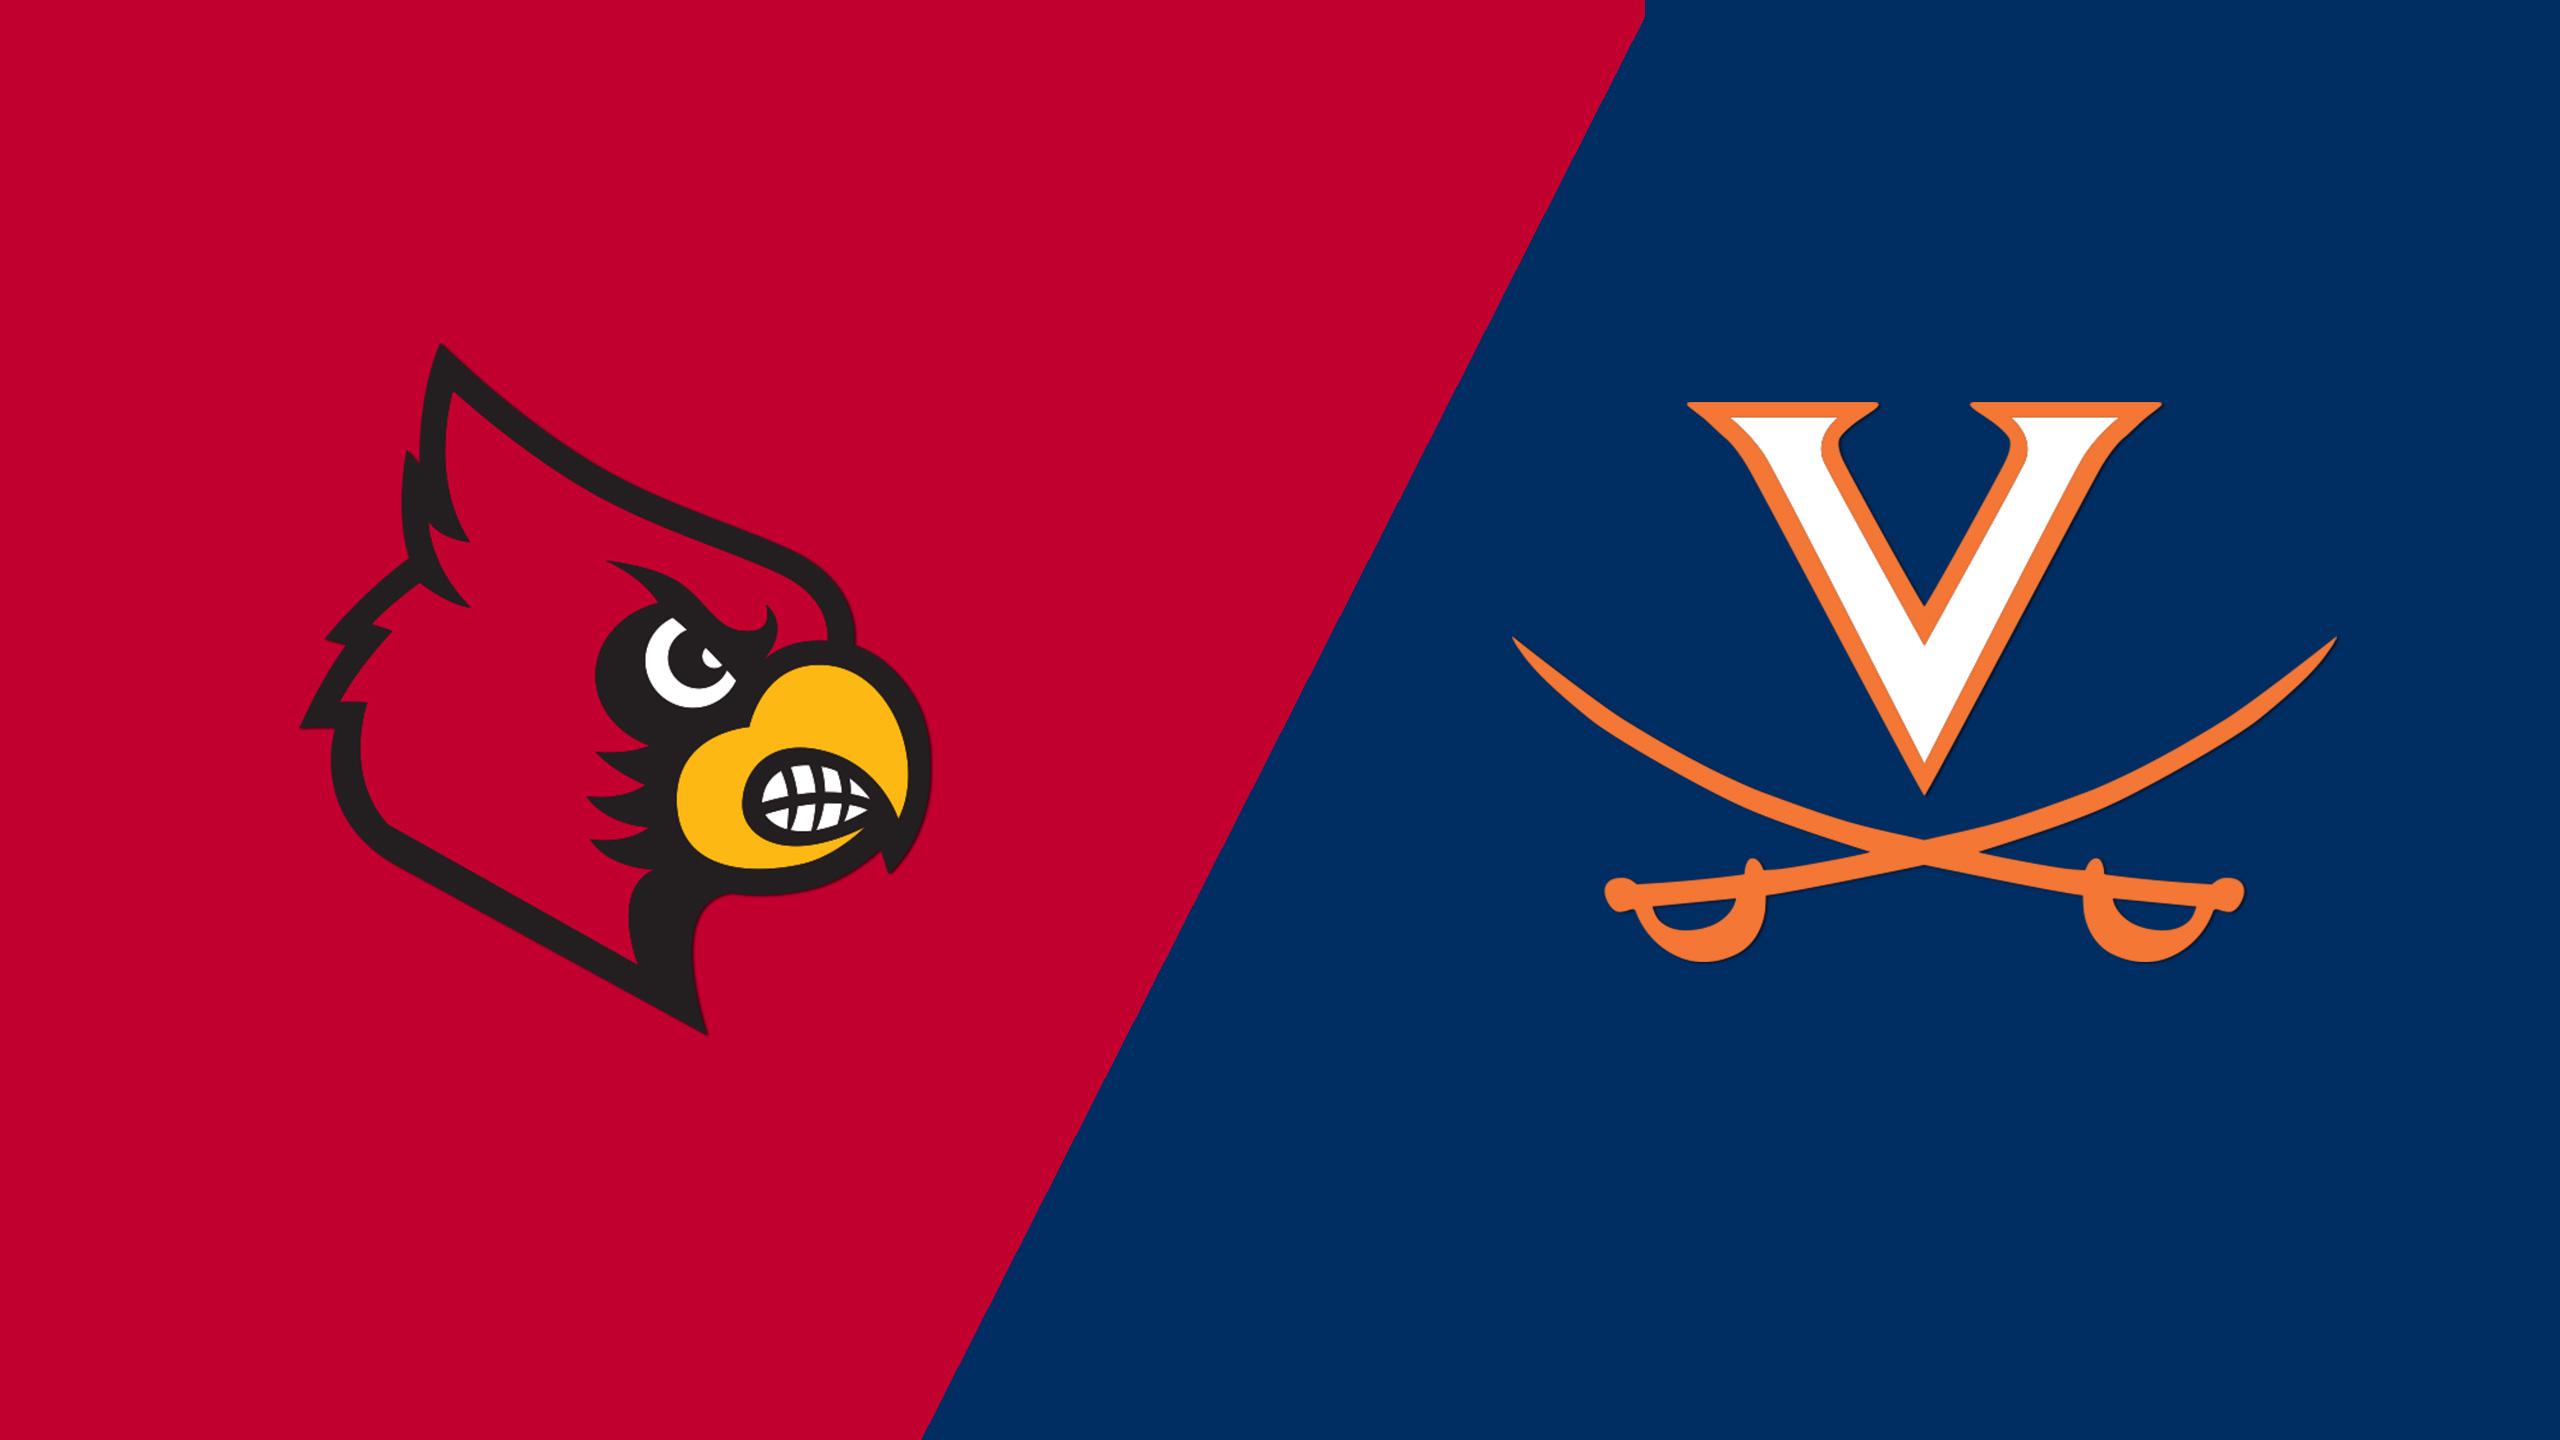 Louisville vs. Virginia (Football)